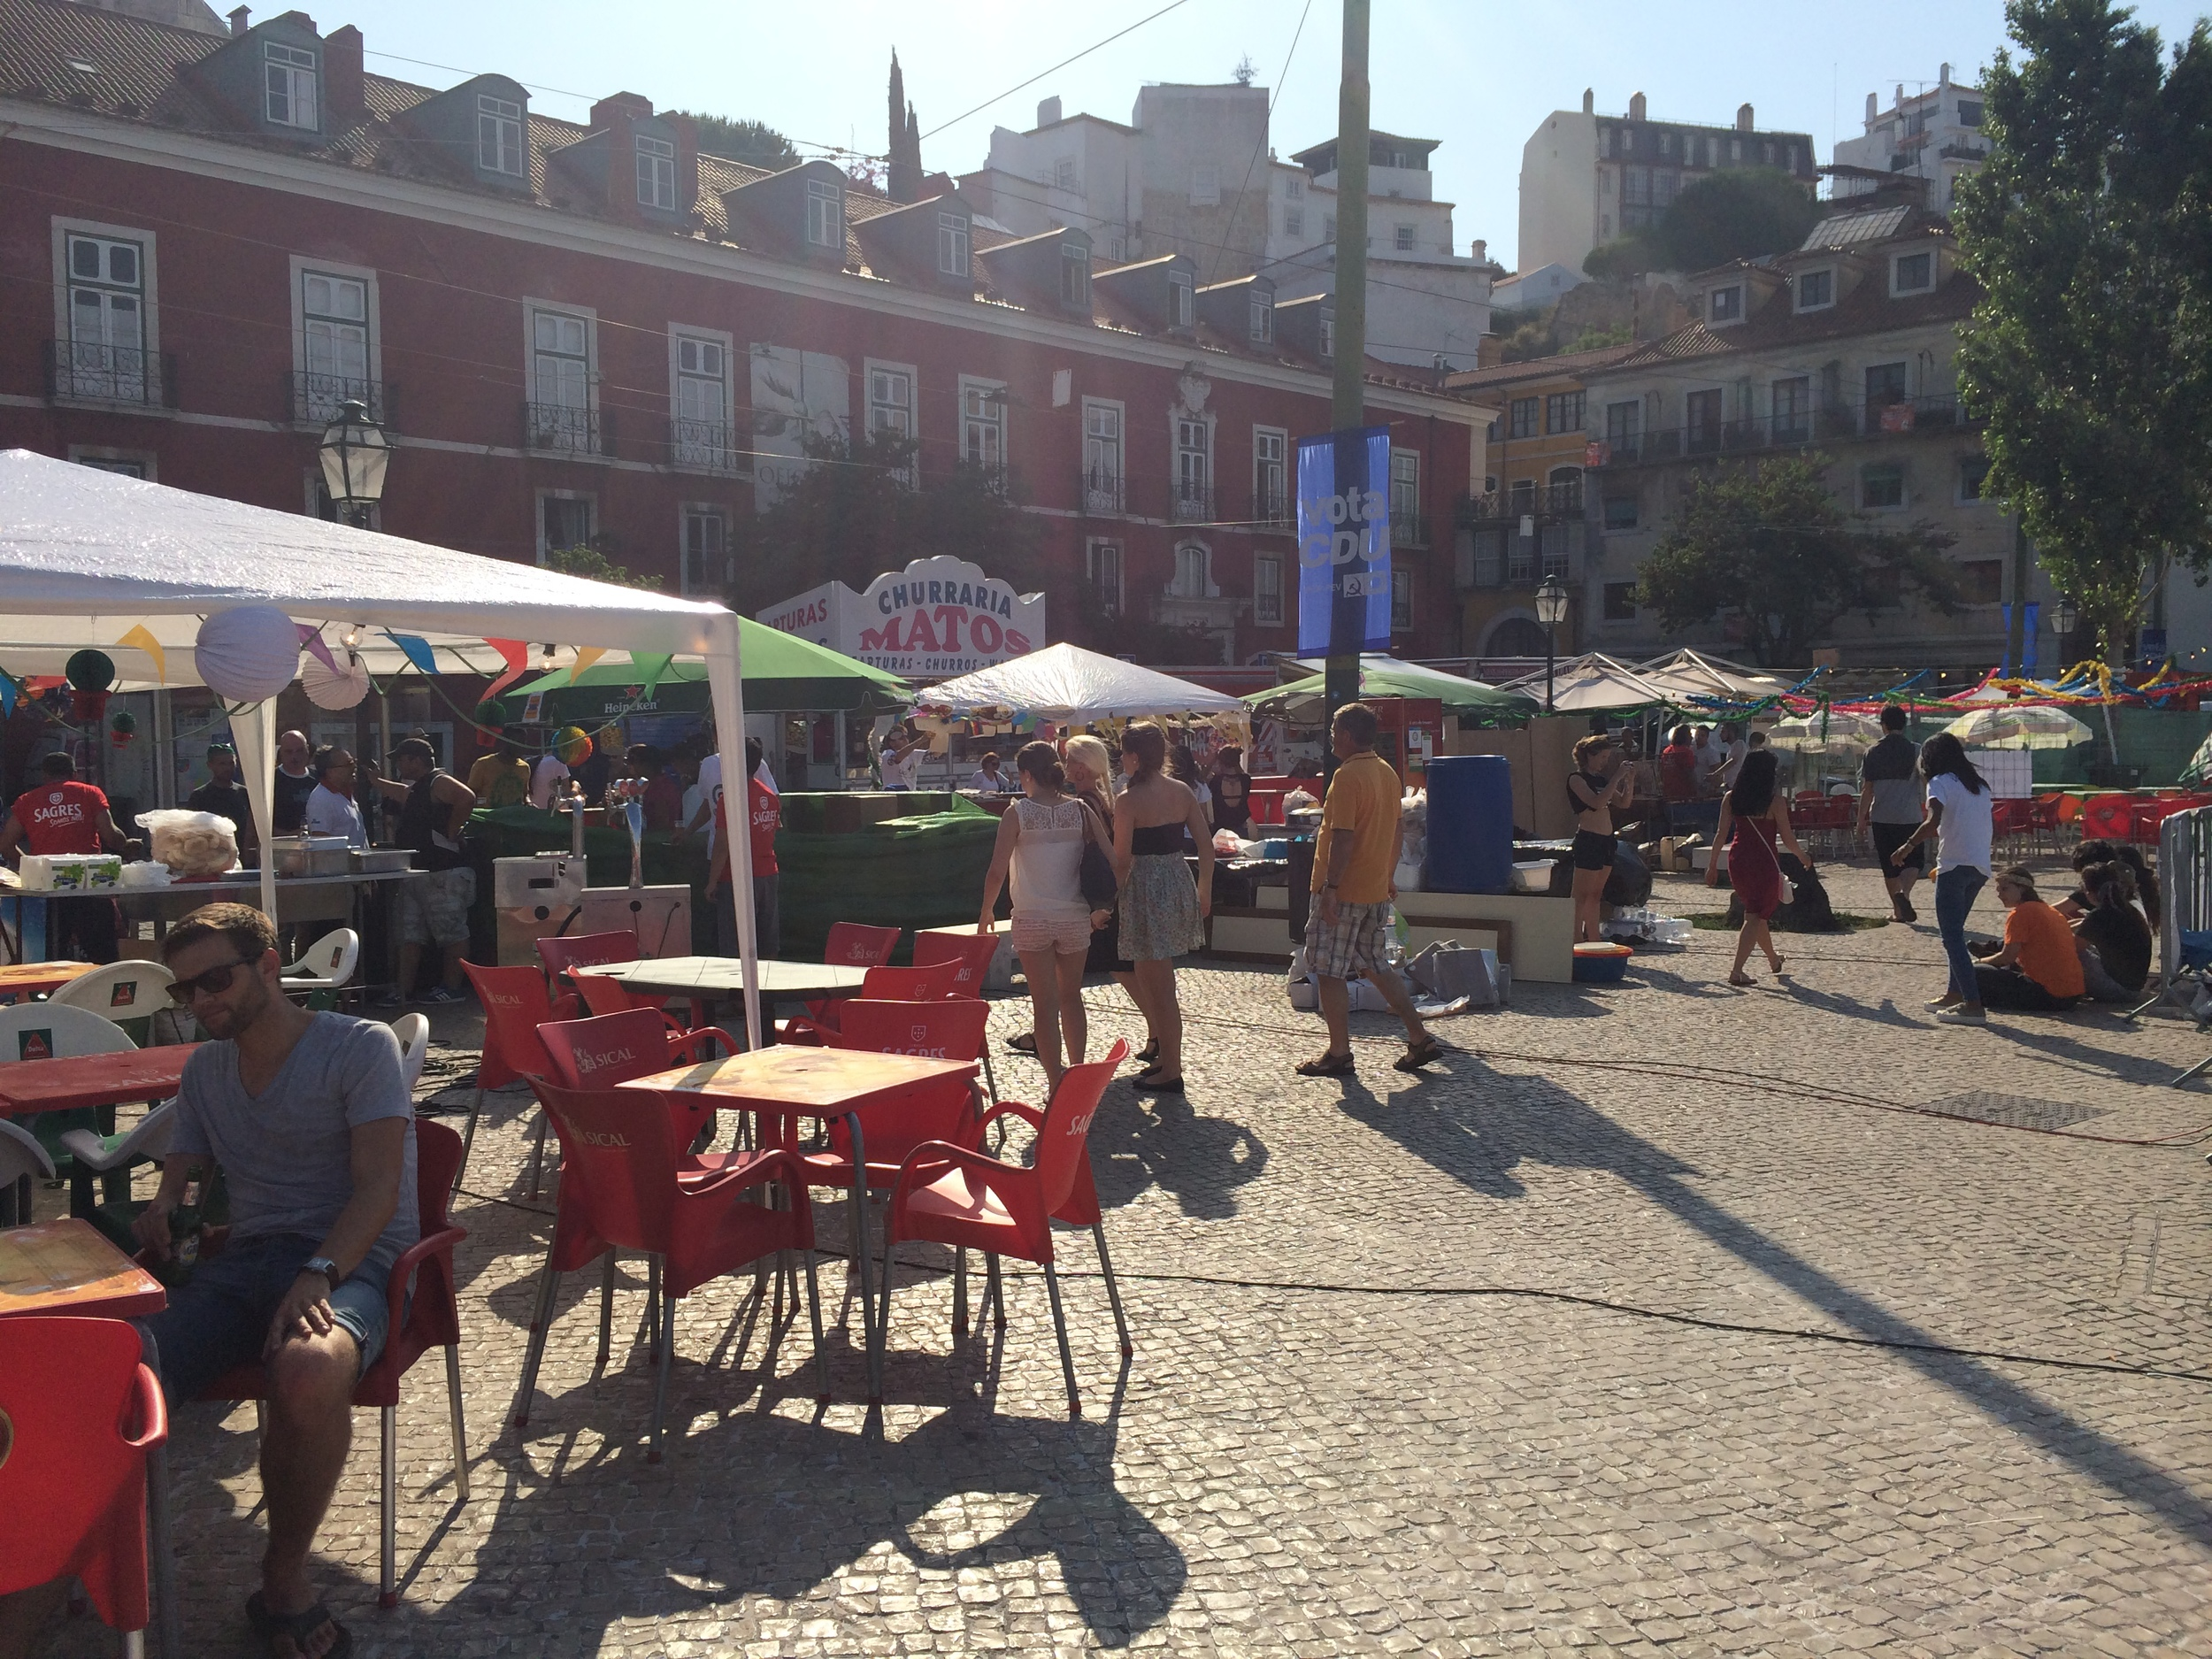 The city streets were full of people setting up for the Festival of Santo Antonio.